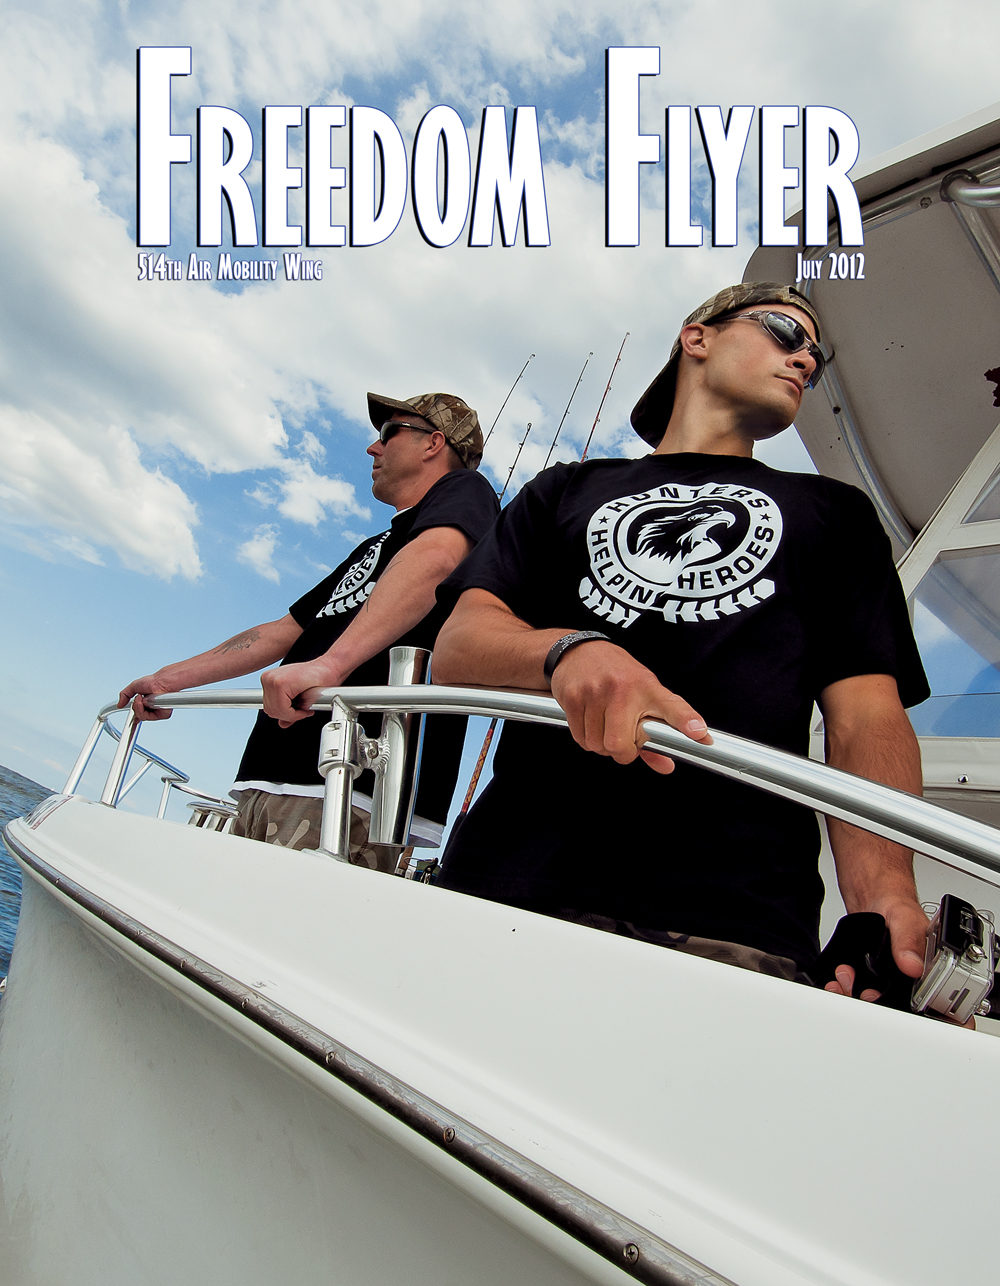 Freedom Flyer - July 2012